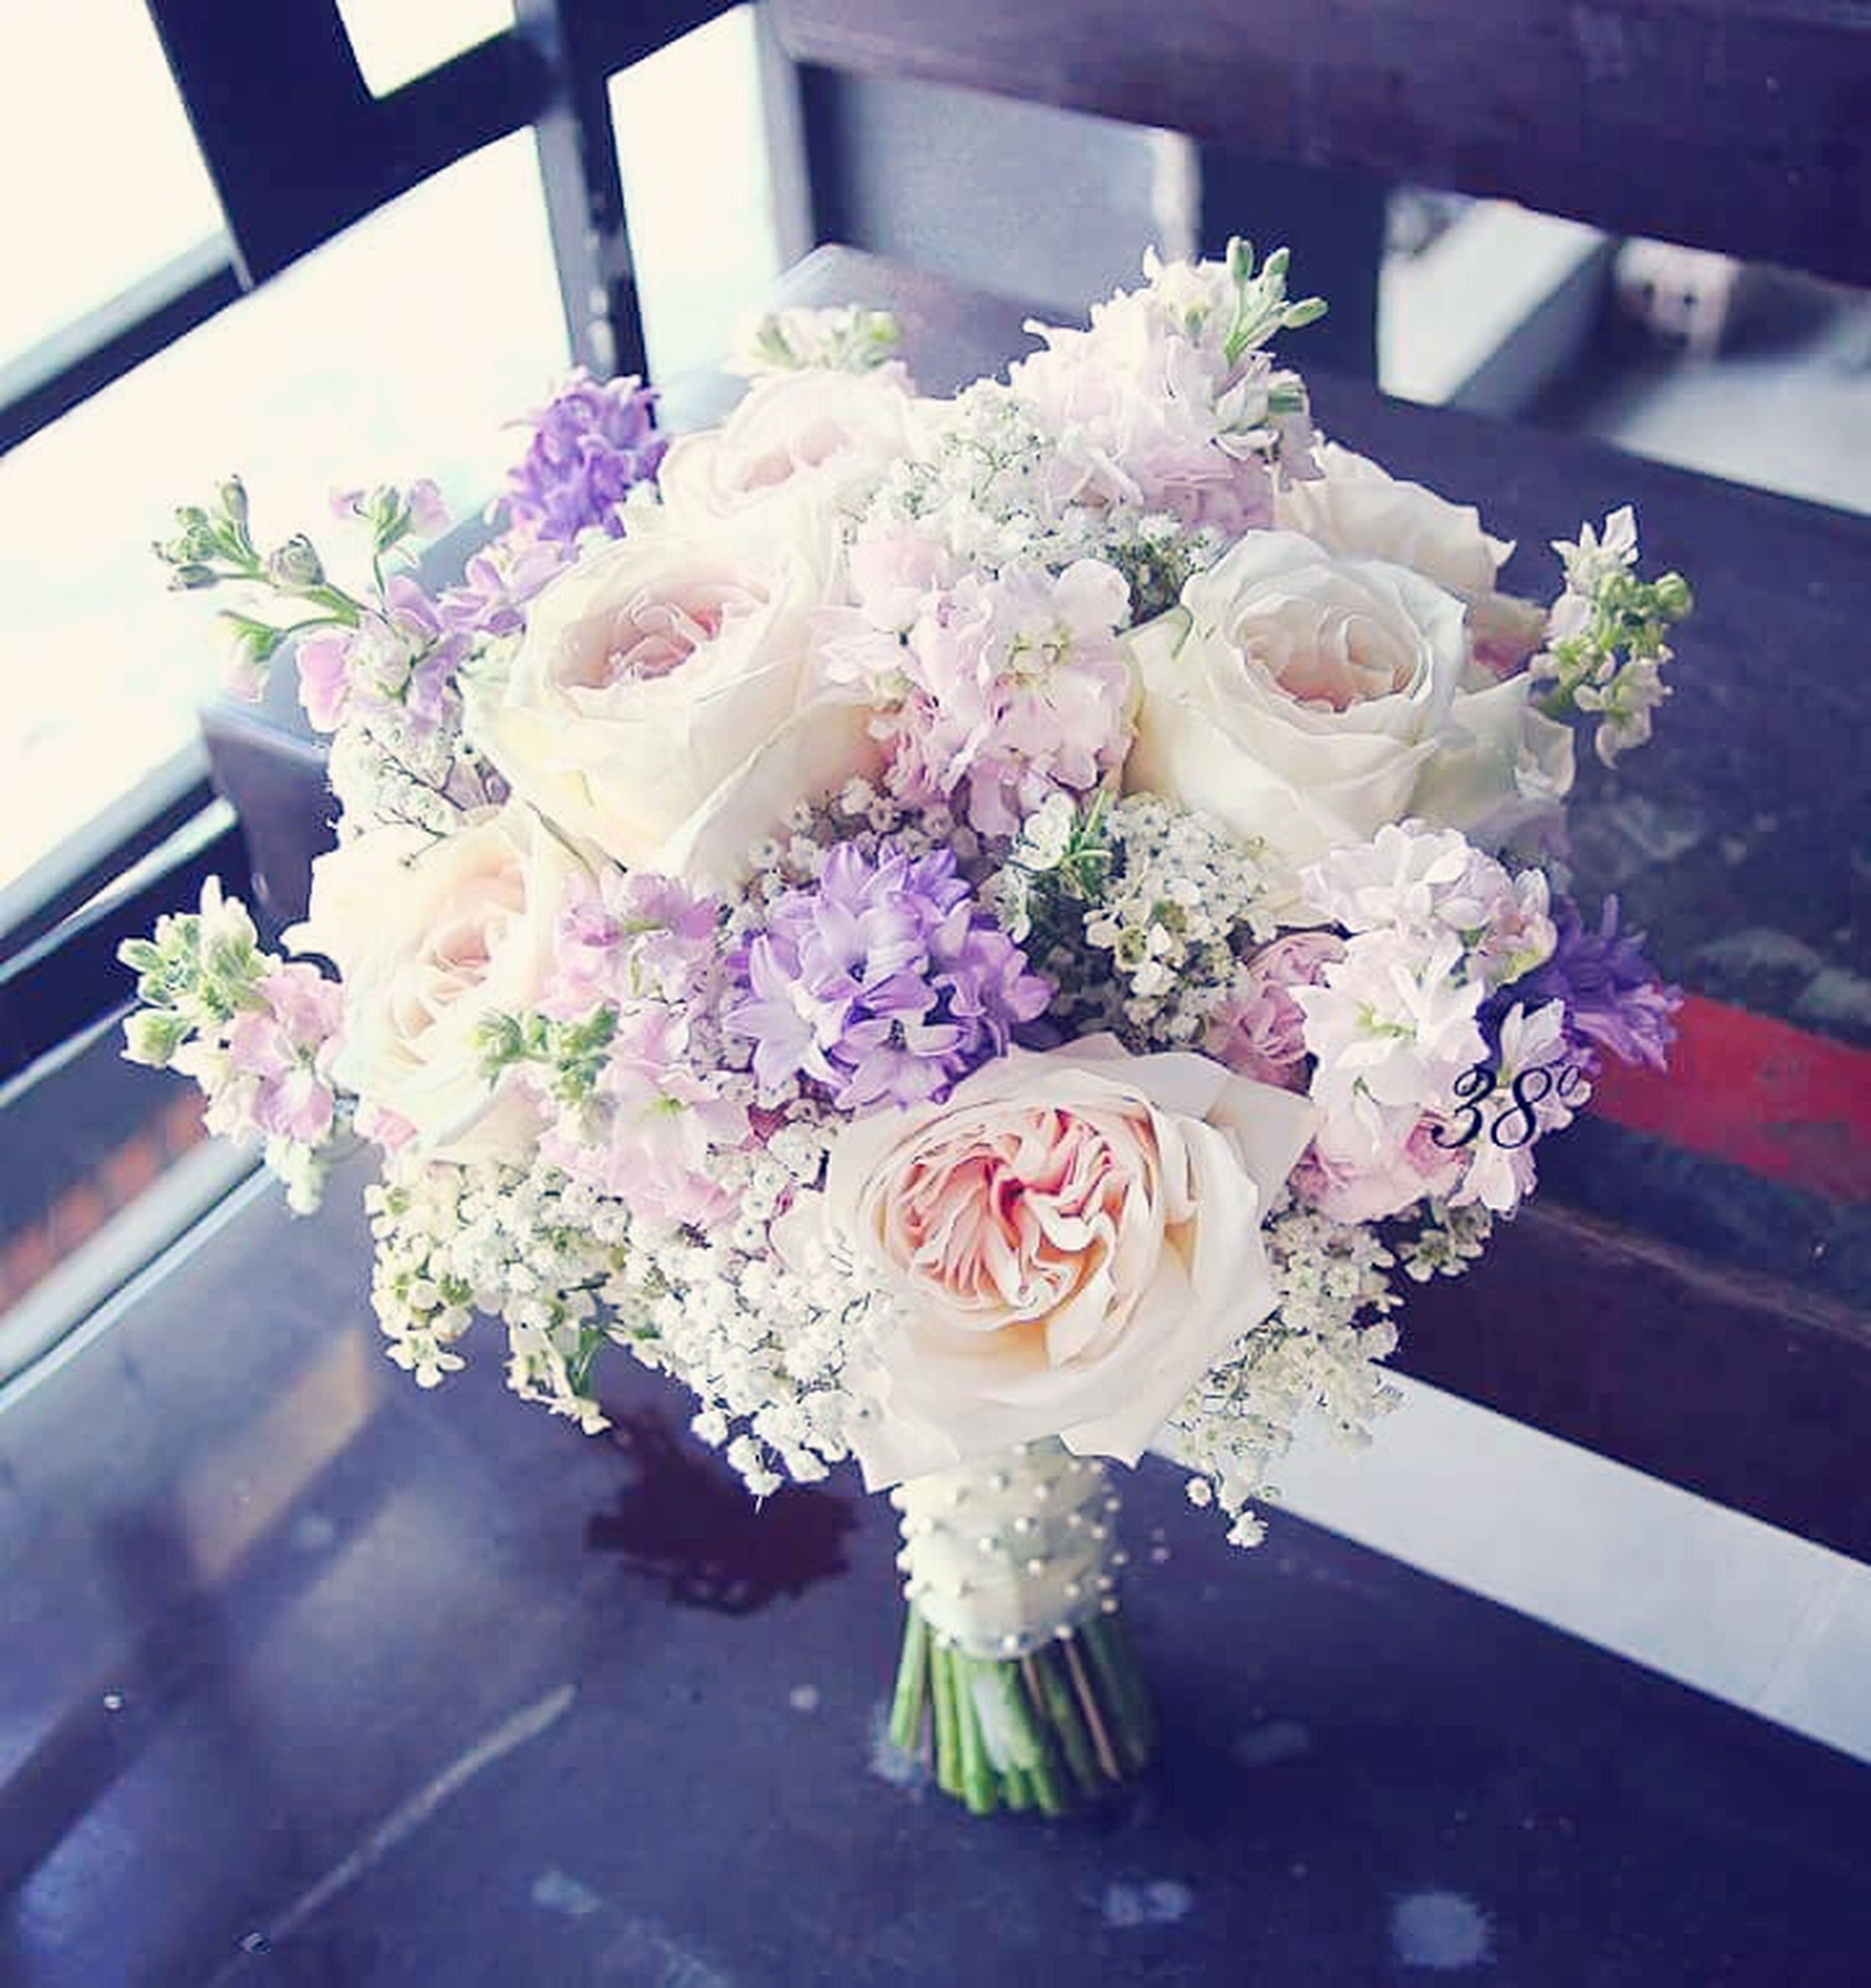 flower, freshness, fragility, indoors, bouquet, bunch of flowers, no people, table, close-up, flower head, day, flower arrangement